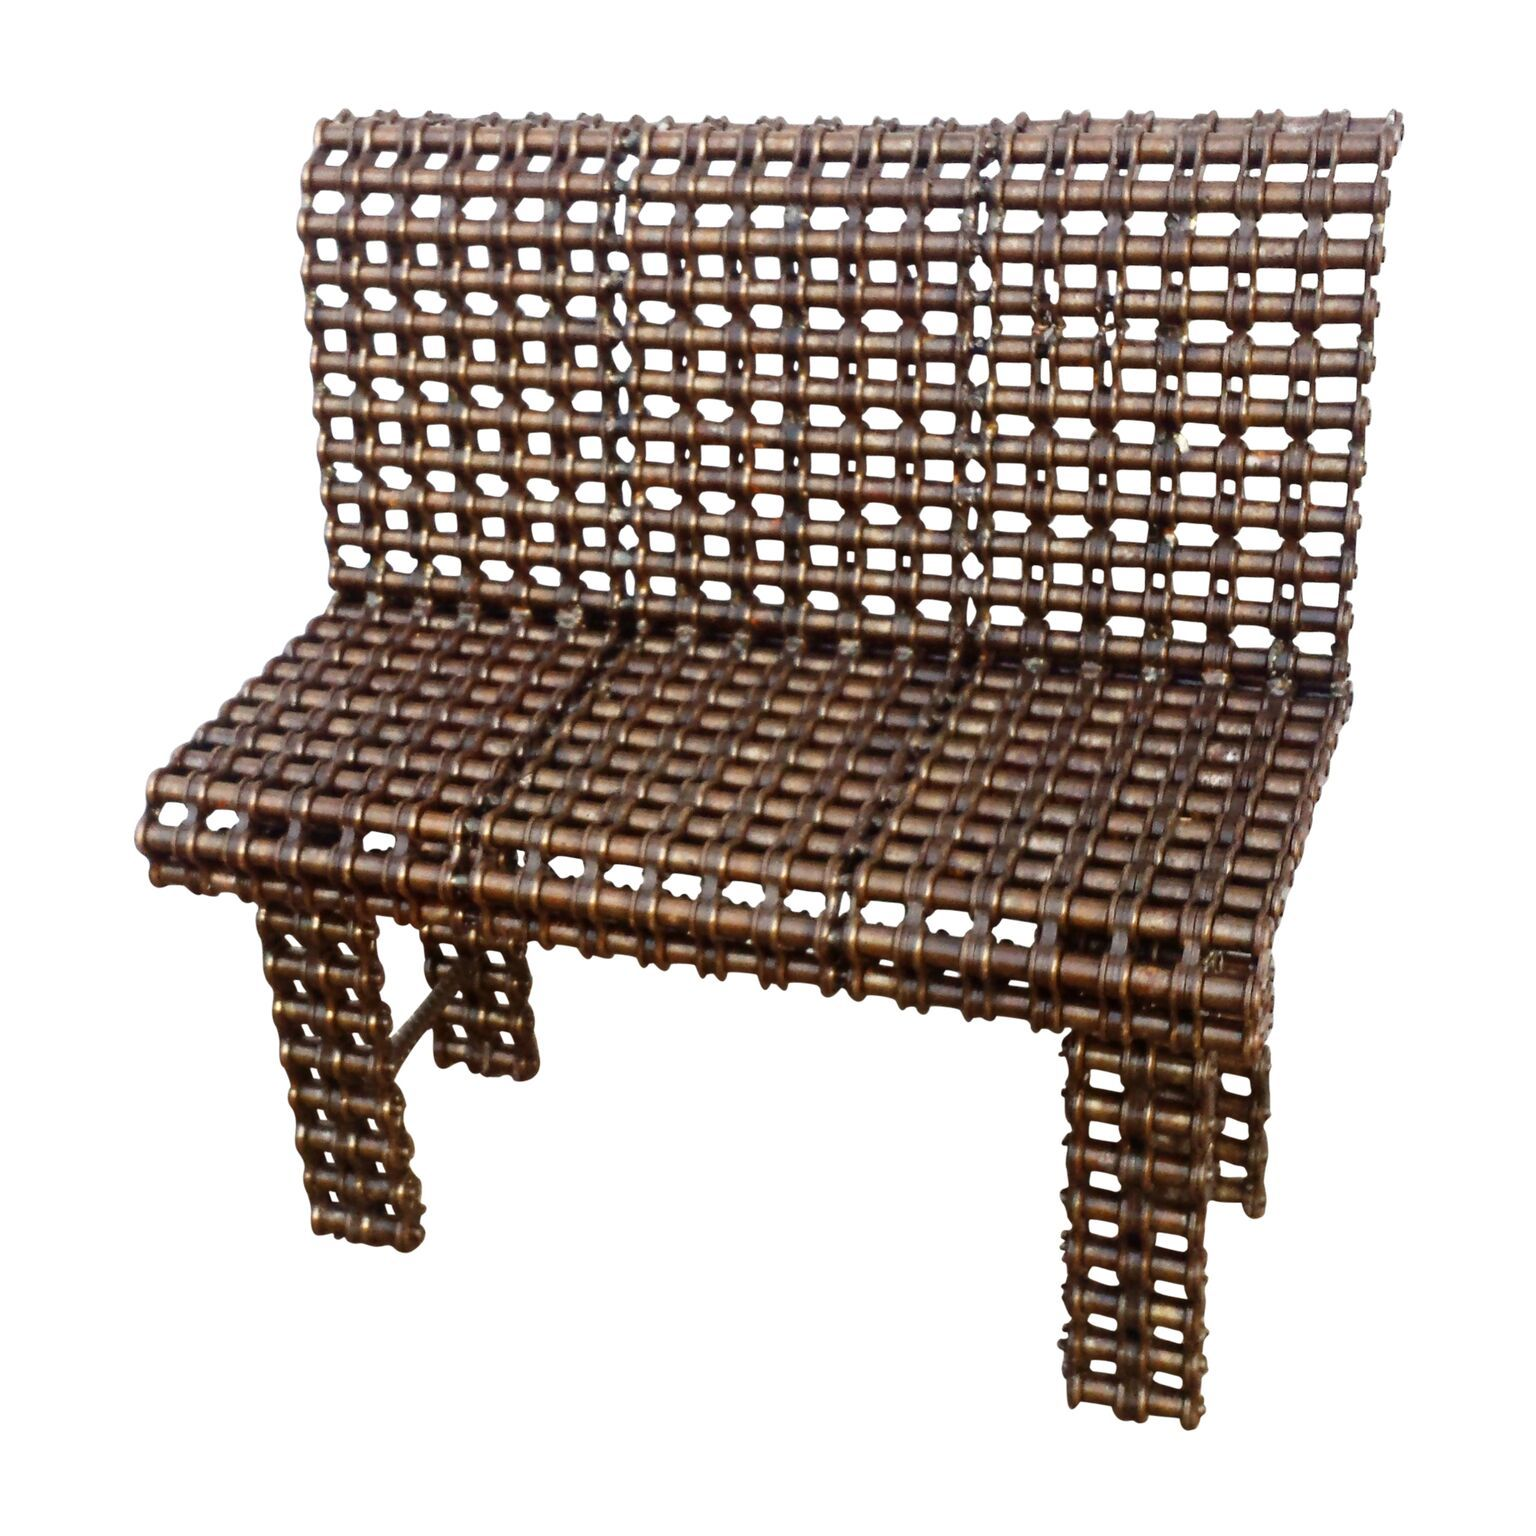 Buy A Custom Garden Furniture Metal Bench Industrial Art Made To Order From Recycled